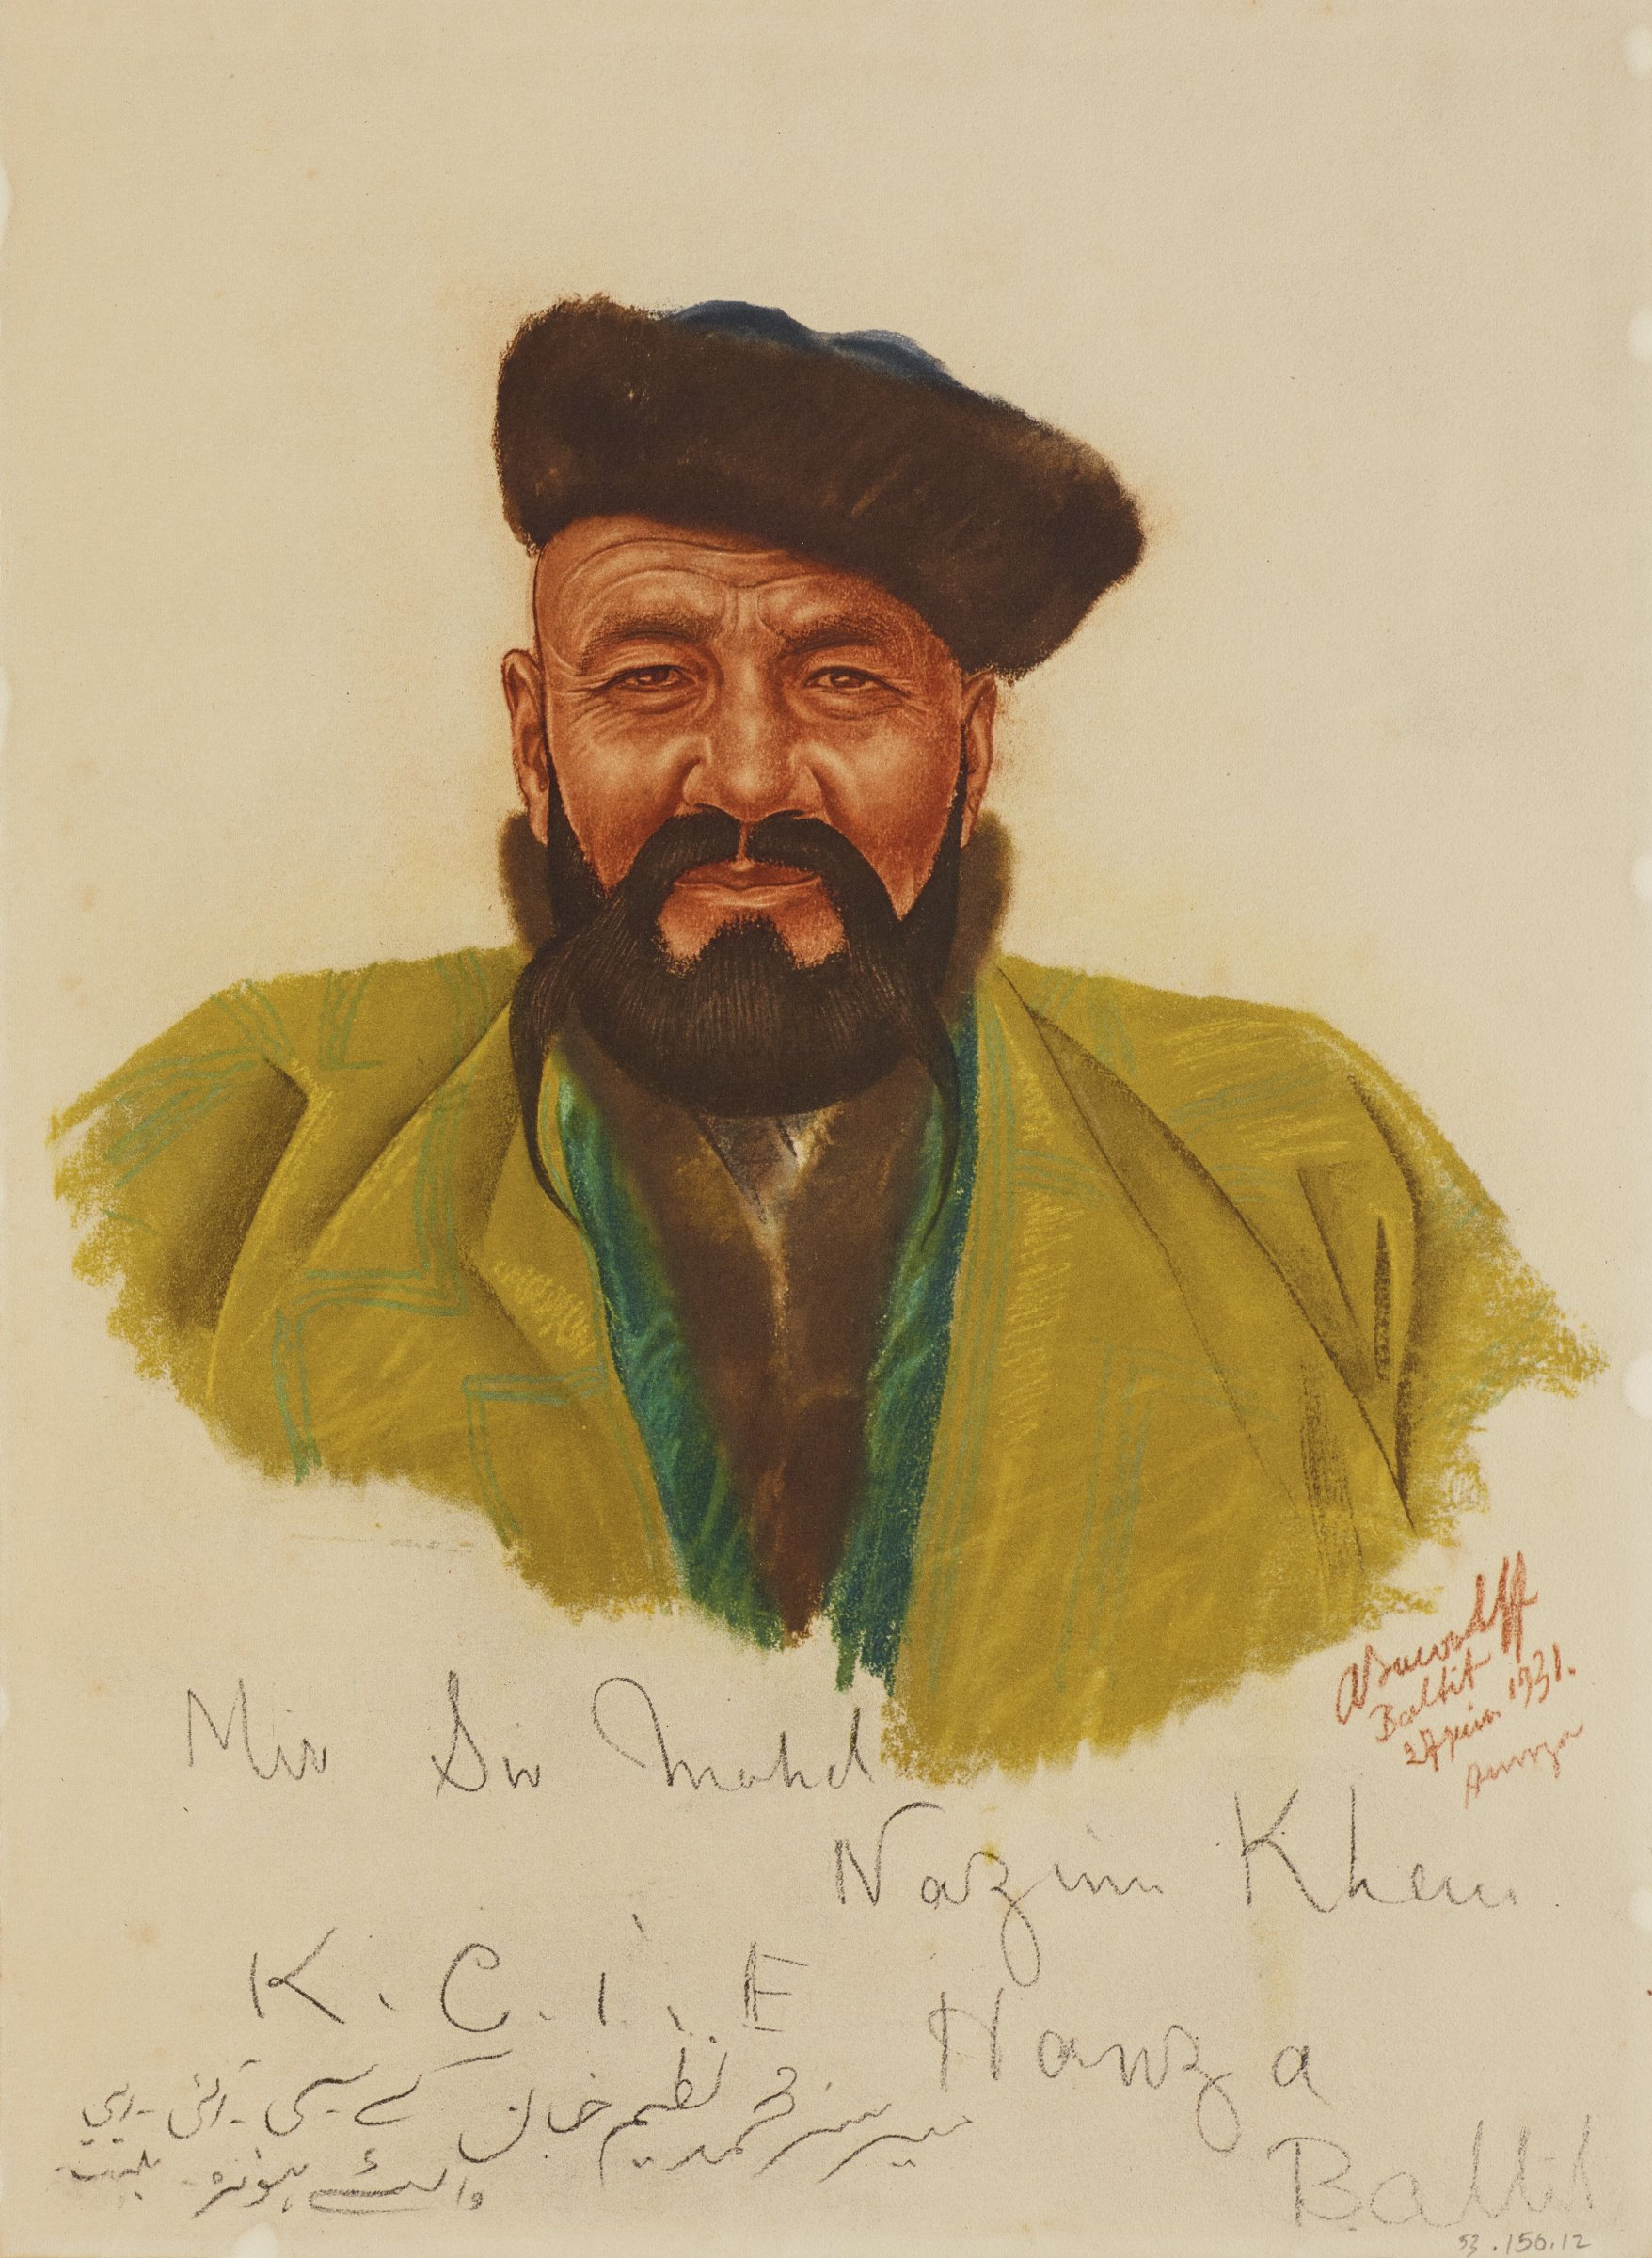 Bust portrait of a male figure facing forward looking out at the viewer. He wears a green jacket with a blue zigzag pattern and a fur hat. This series is a product of Jacovleff's involvement in the Expédition Citroën Centre-Asie.